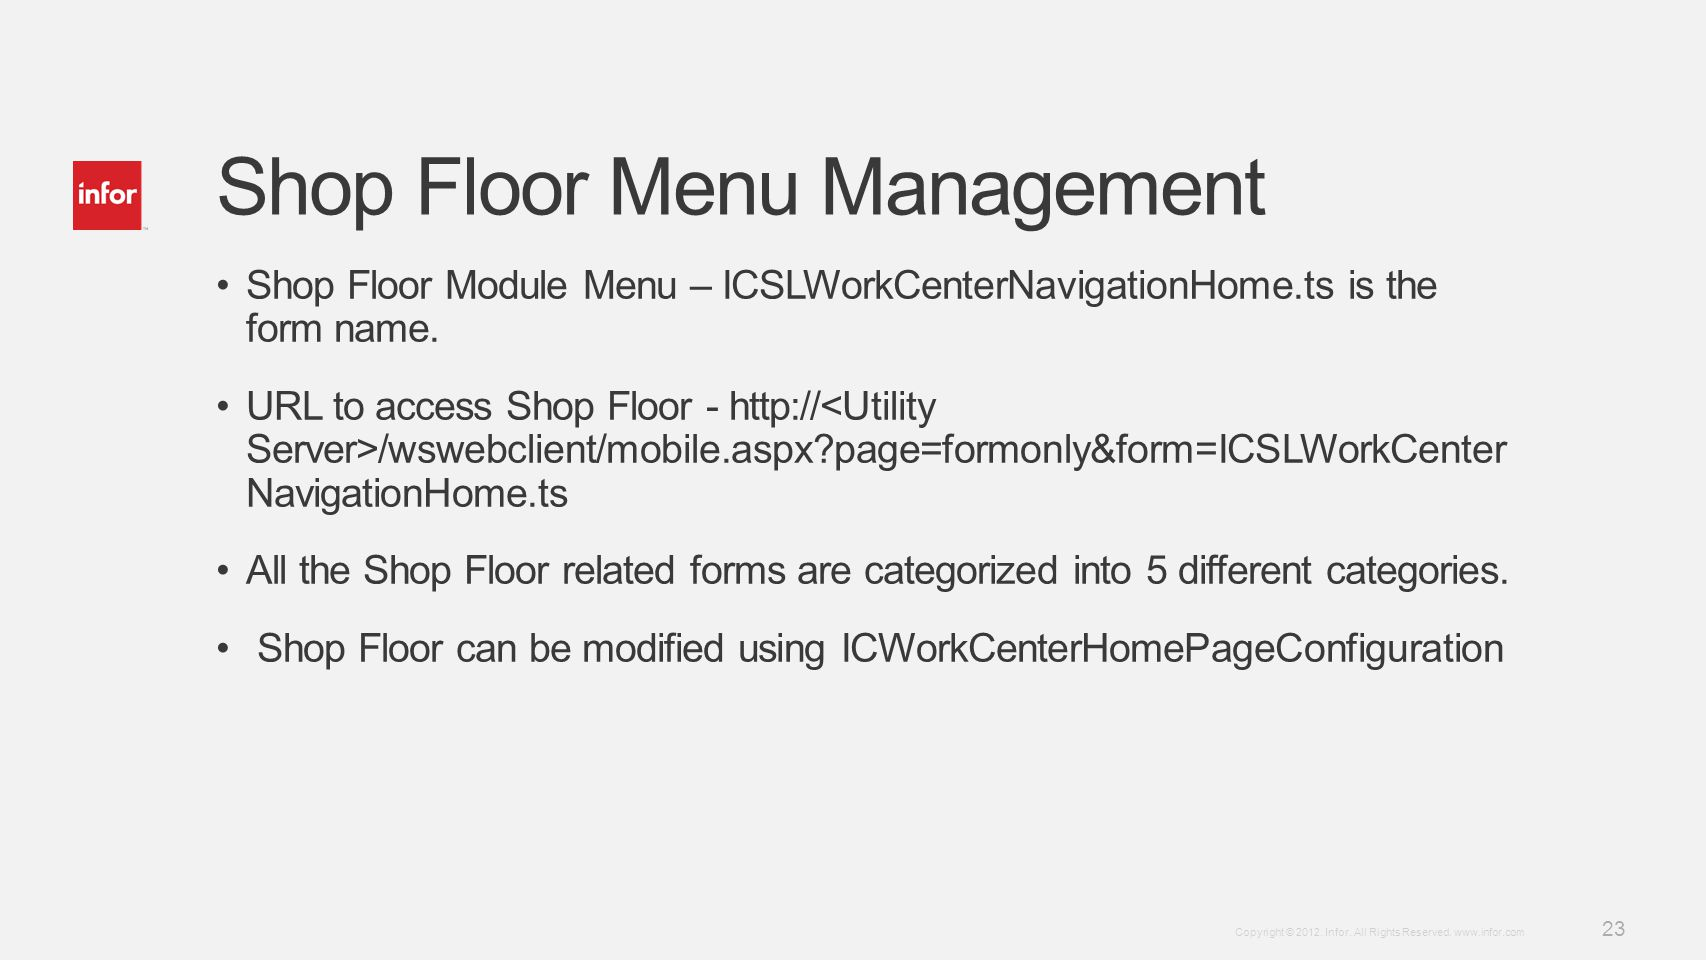 Shop Floor Menu Management